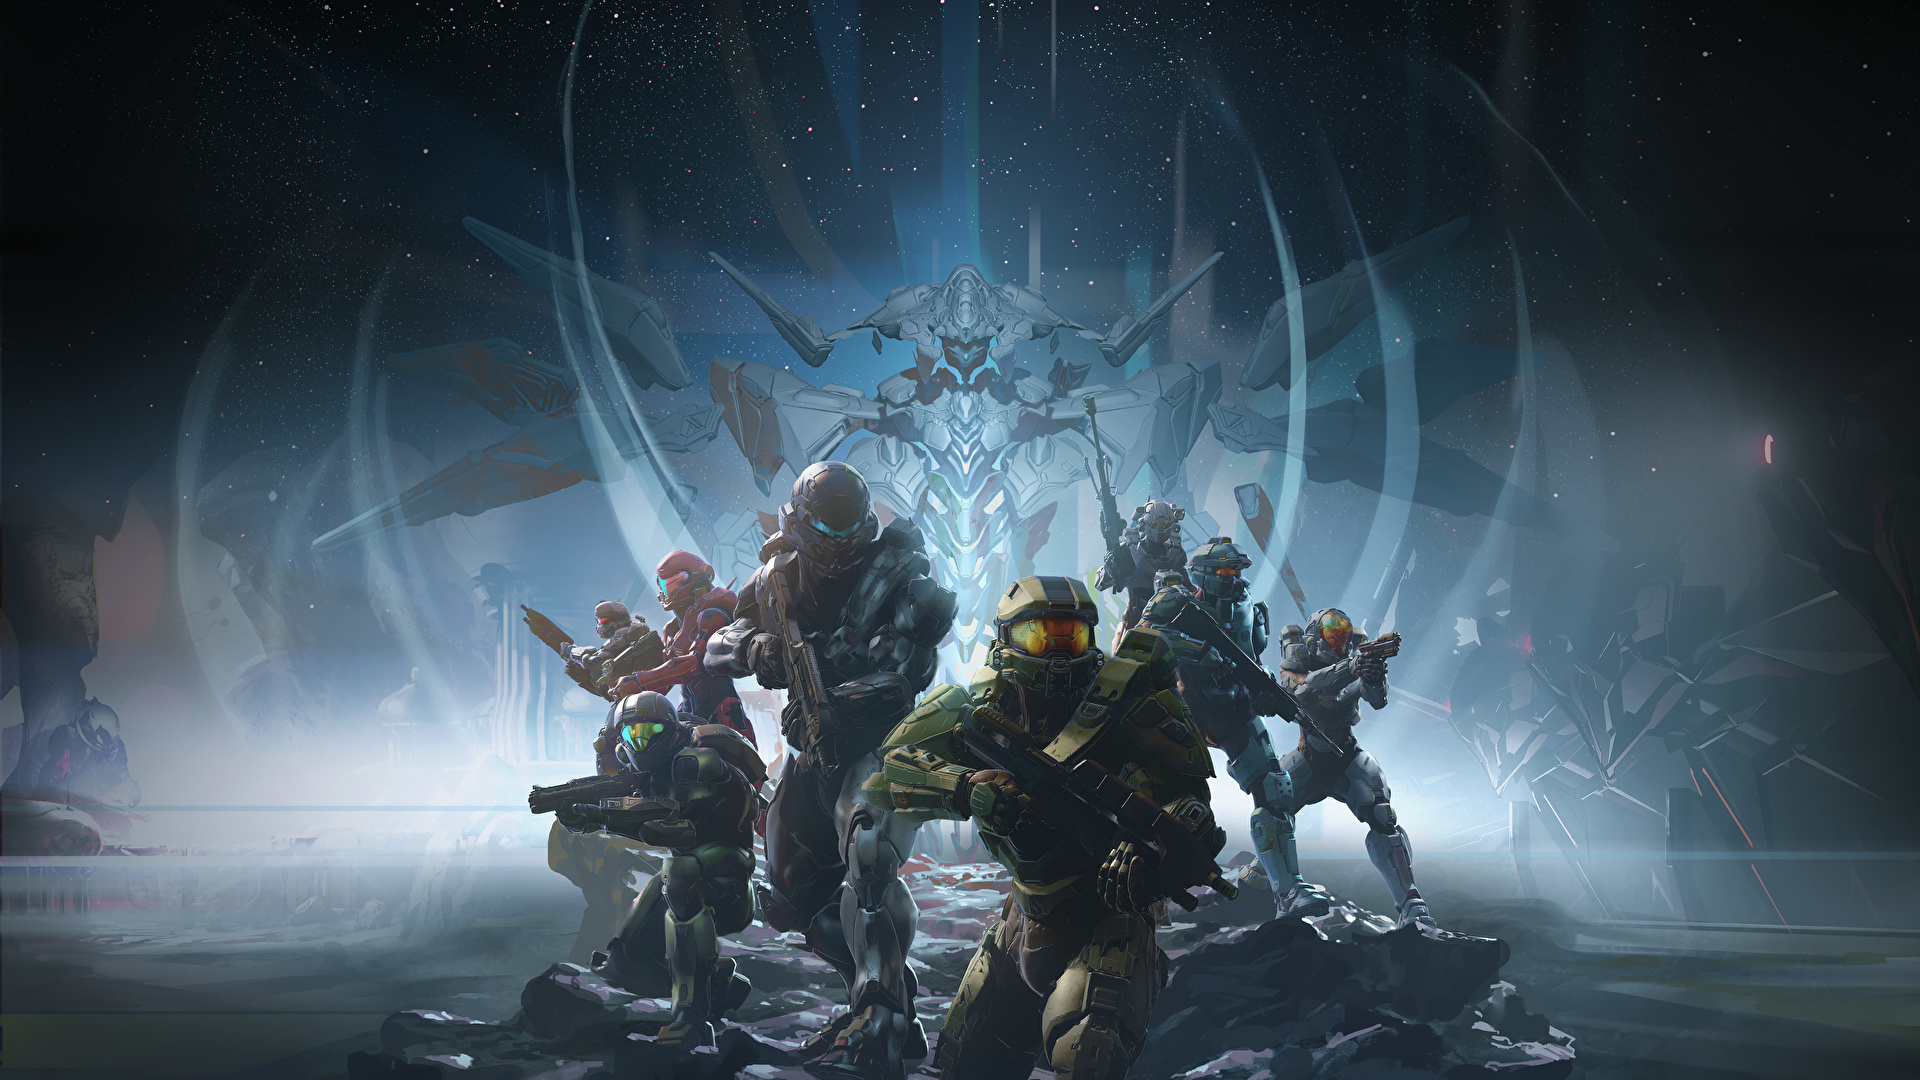 Wallpaper Halo Halo 5 Guardians Armour Warriors Fantasy 1920x1080